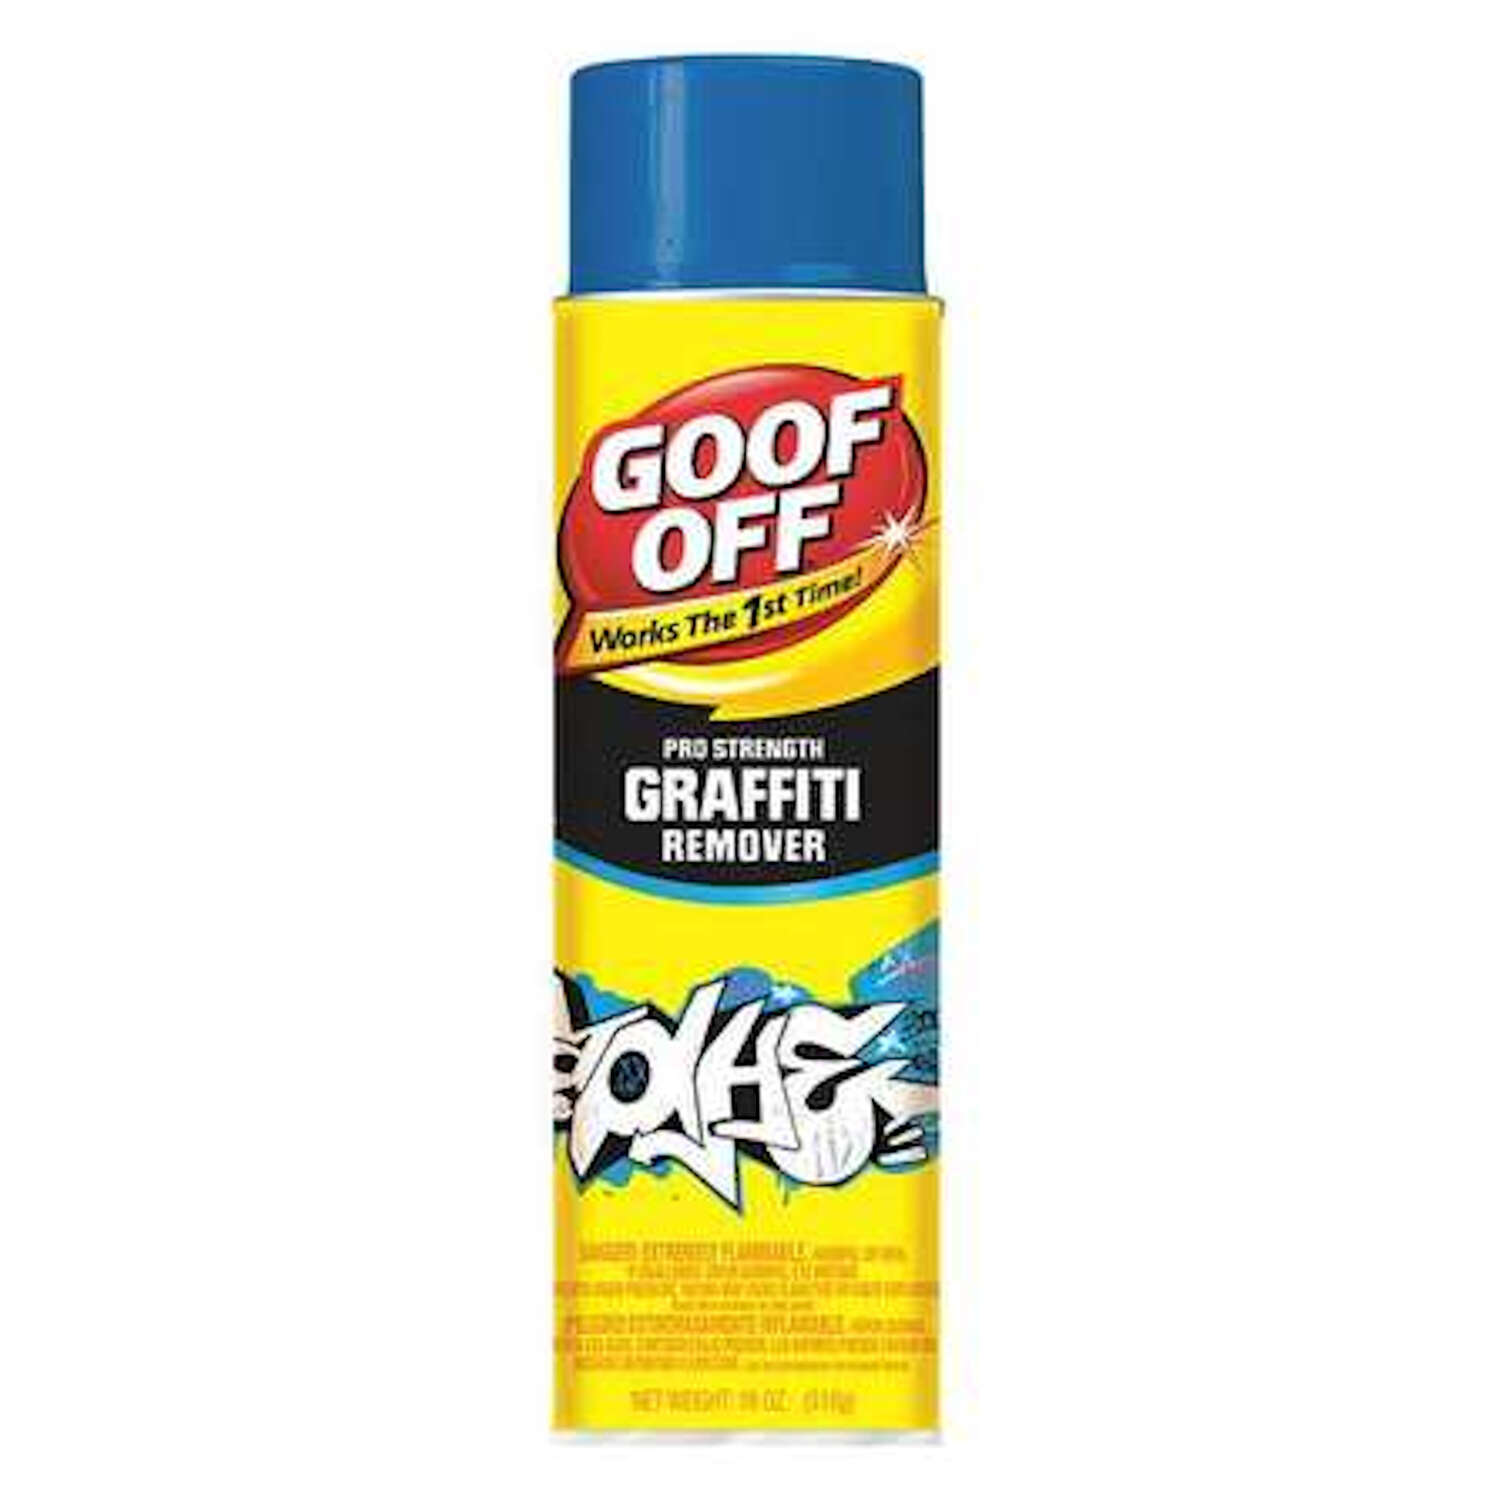 Goof Off  Pro Strength Graffiti  All Purpose Remover  18 oz.